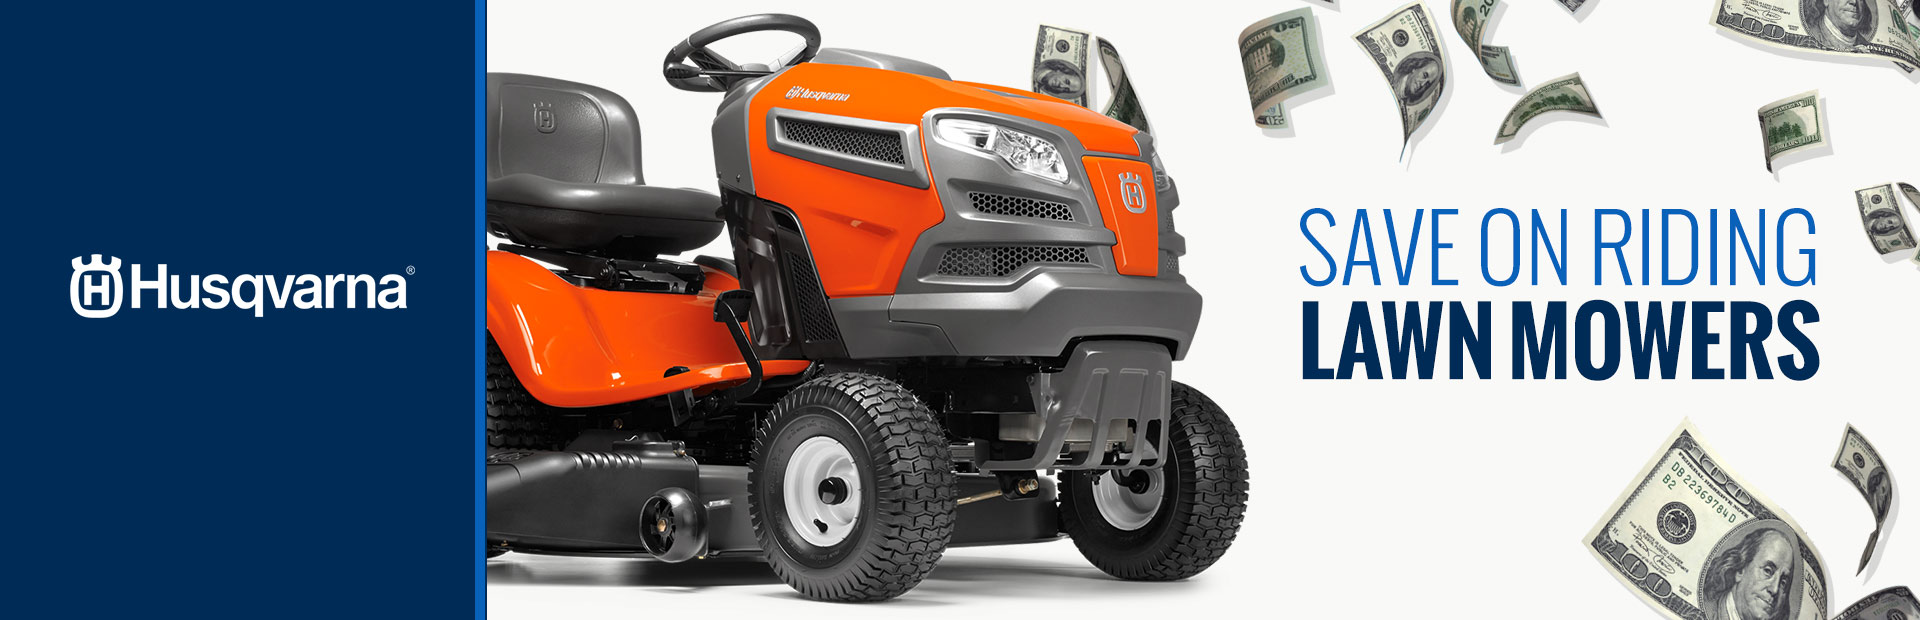 Husqvarna: Save on Riding Lawn Mowers